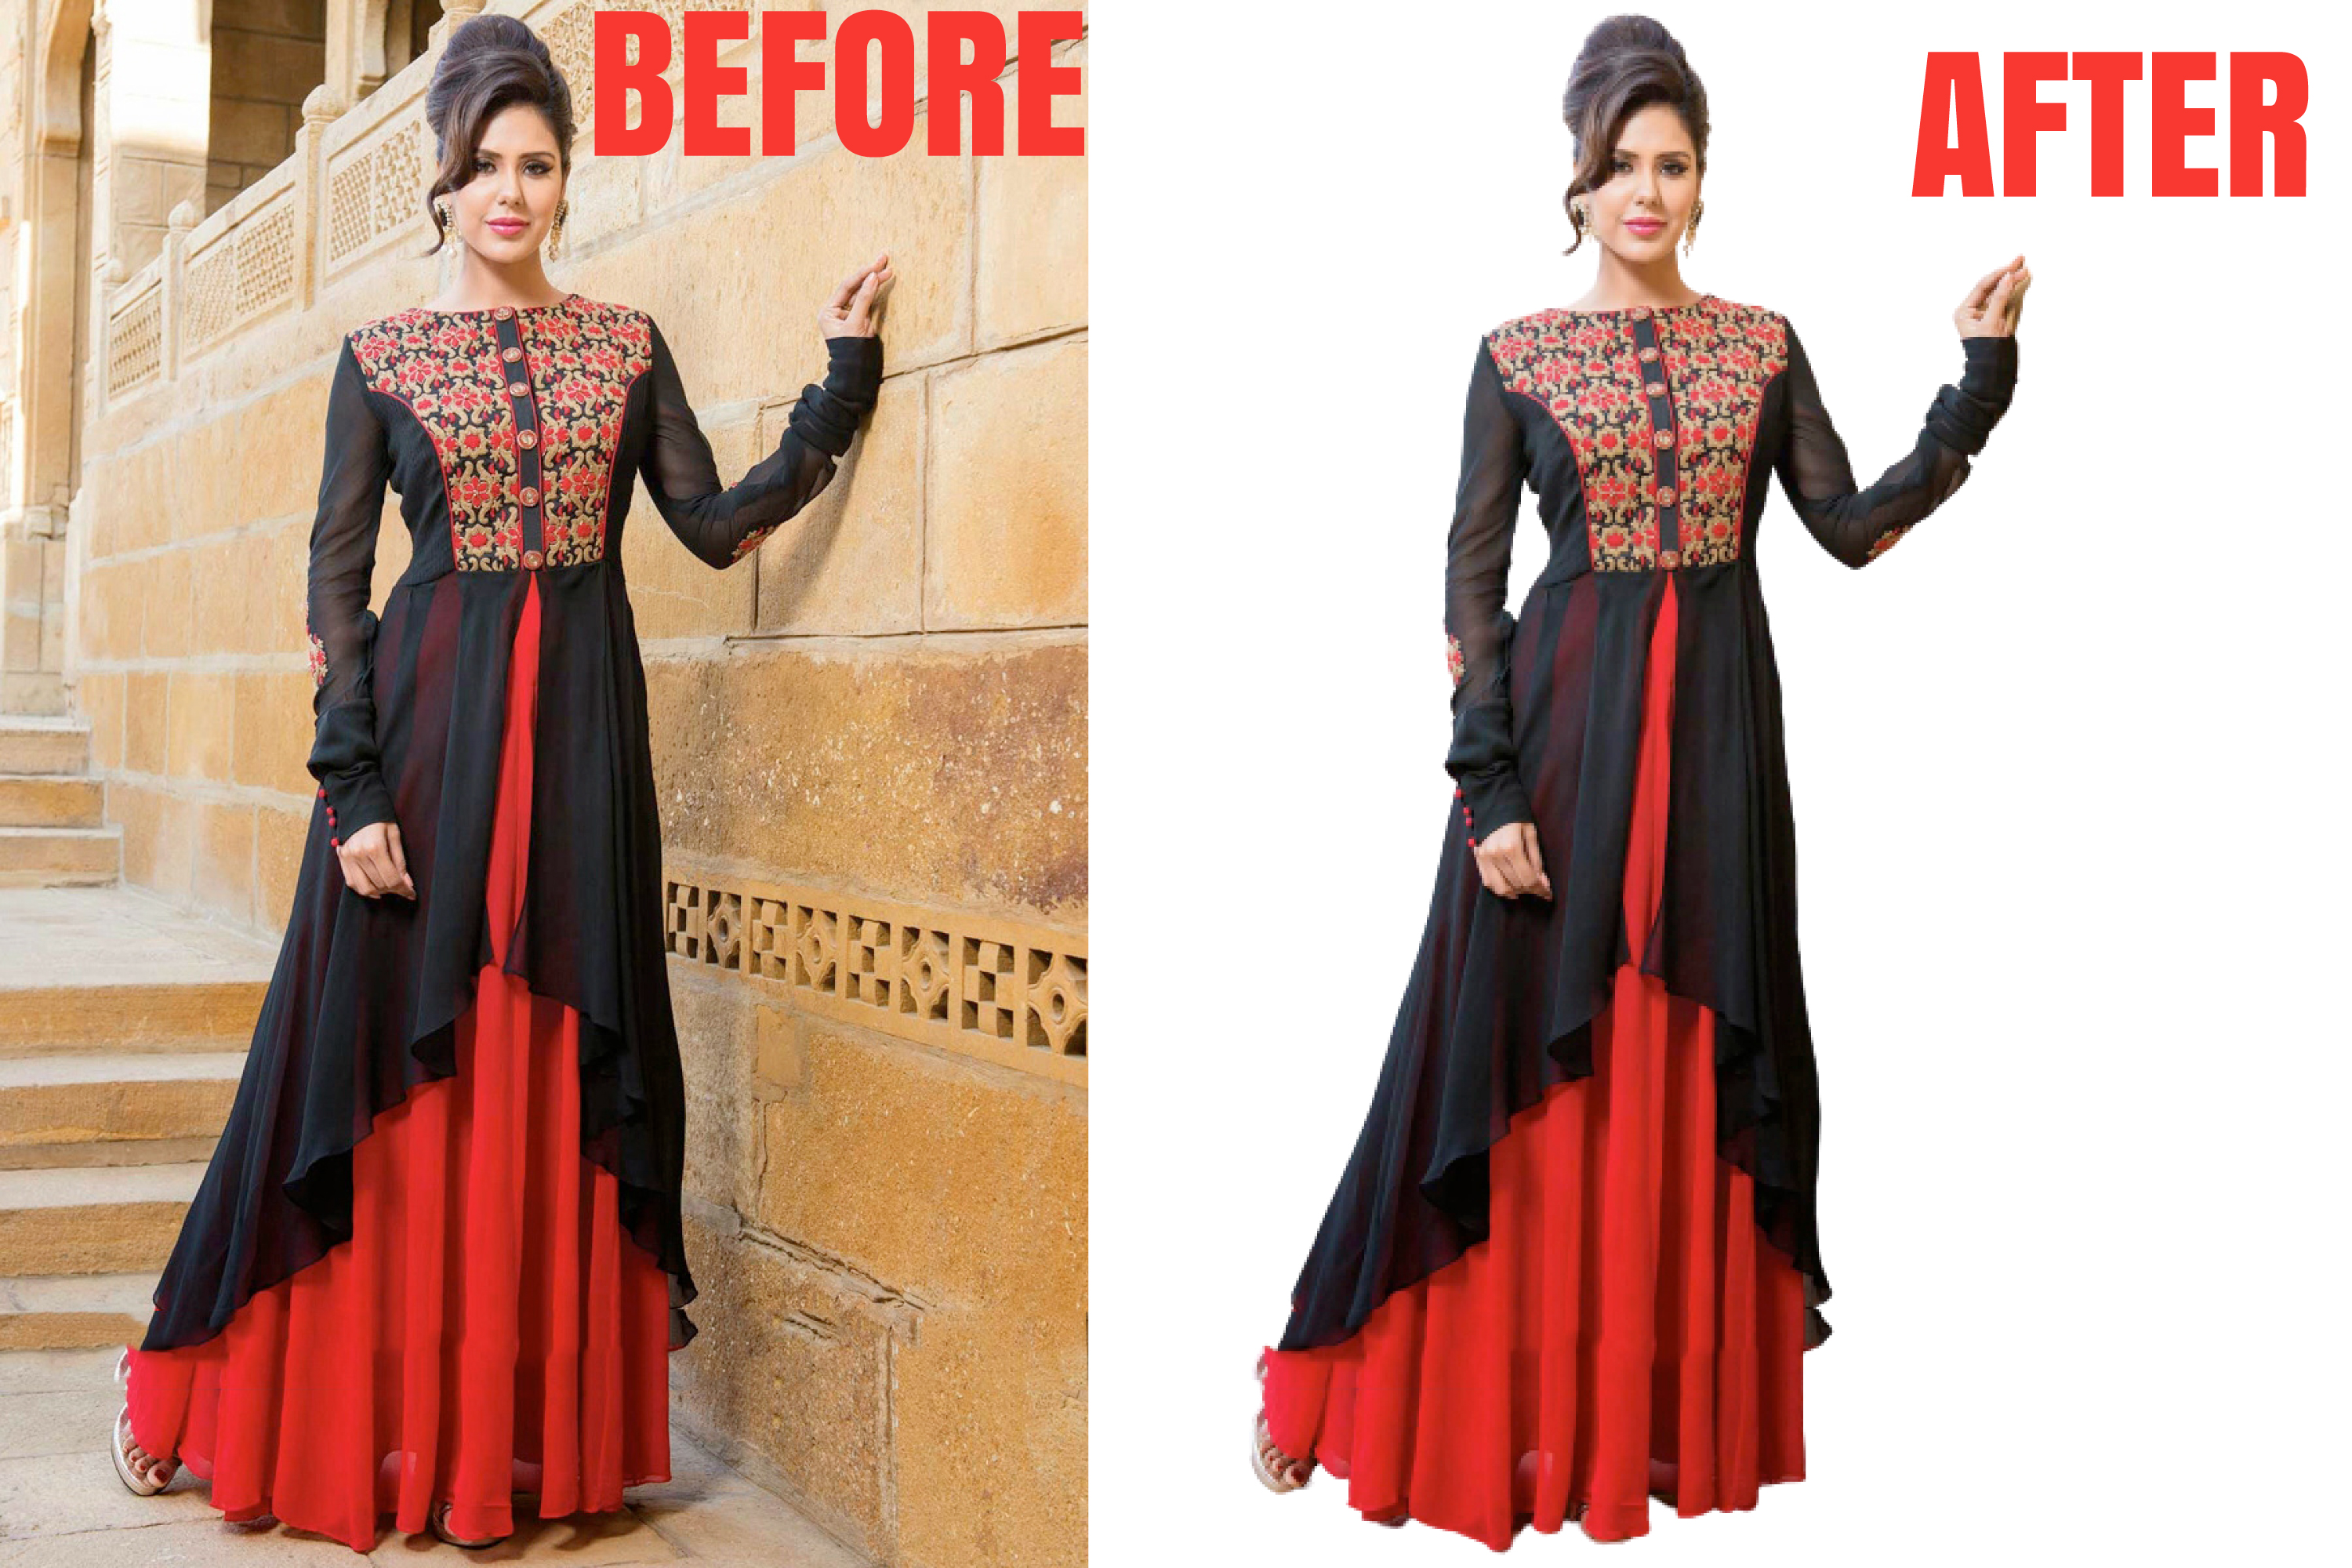 I will remove background, crop image and photoshop editing 2 images in 12 hours